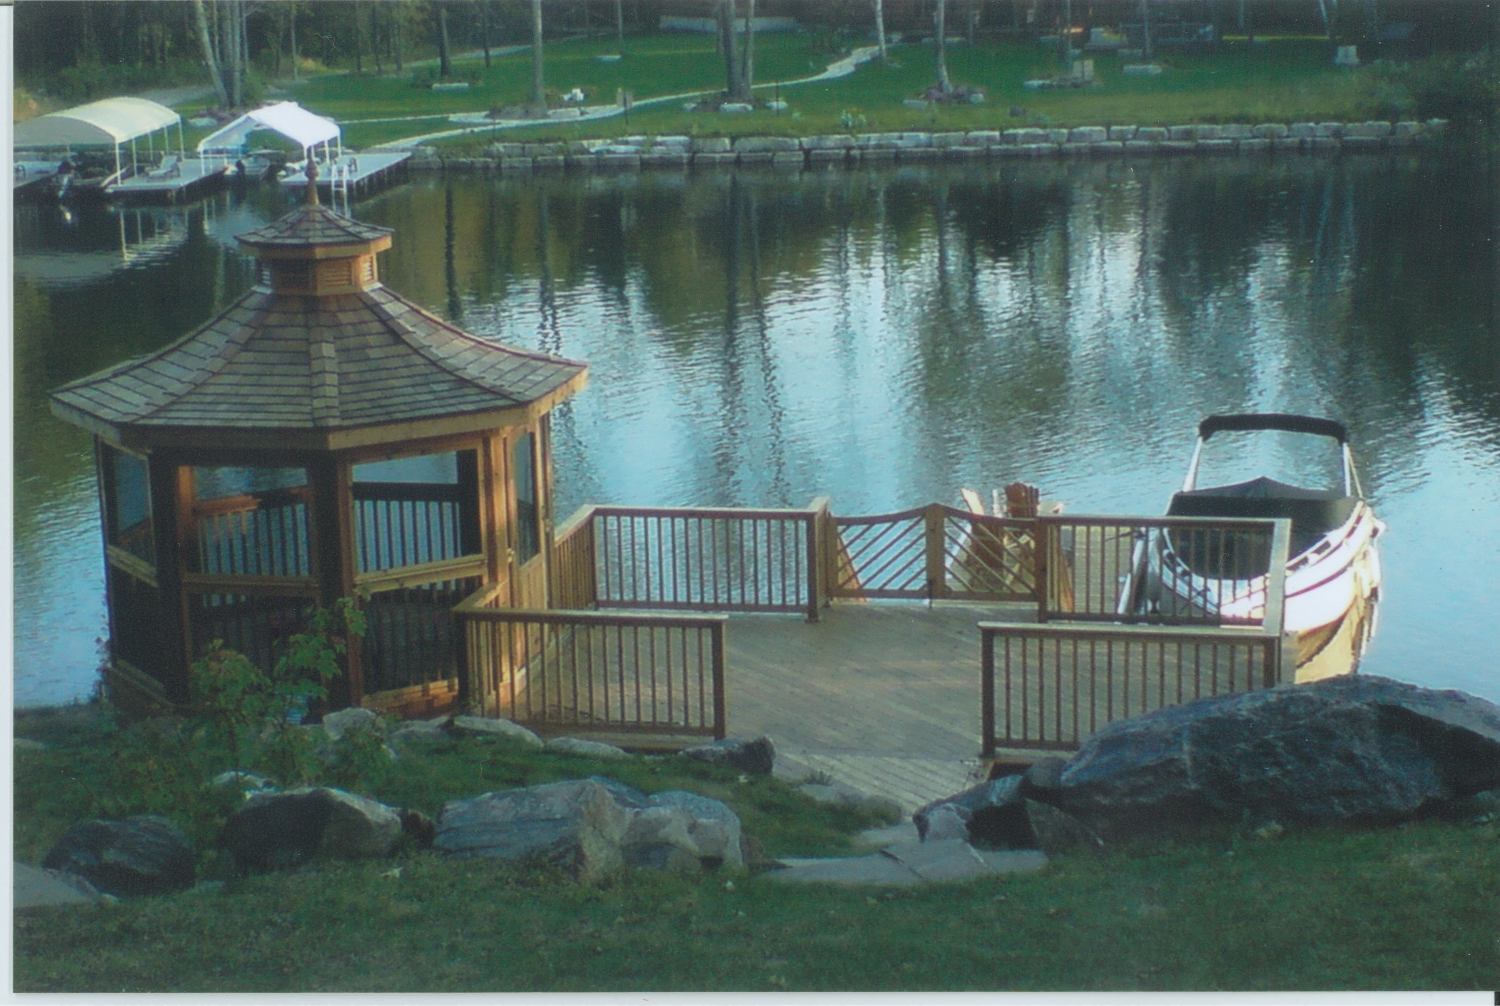 Gazebo and dock design